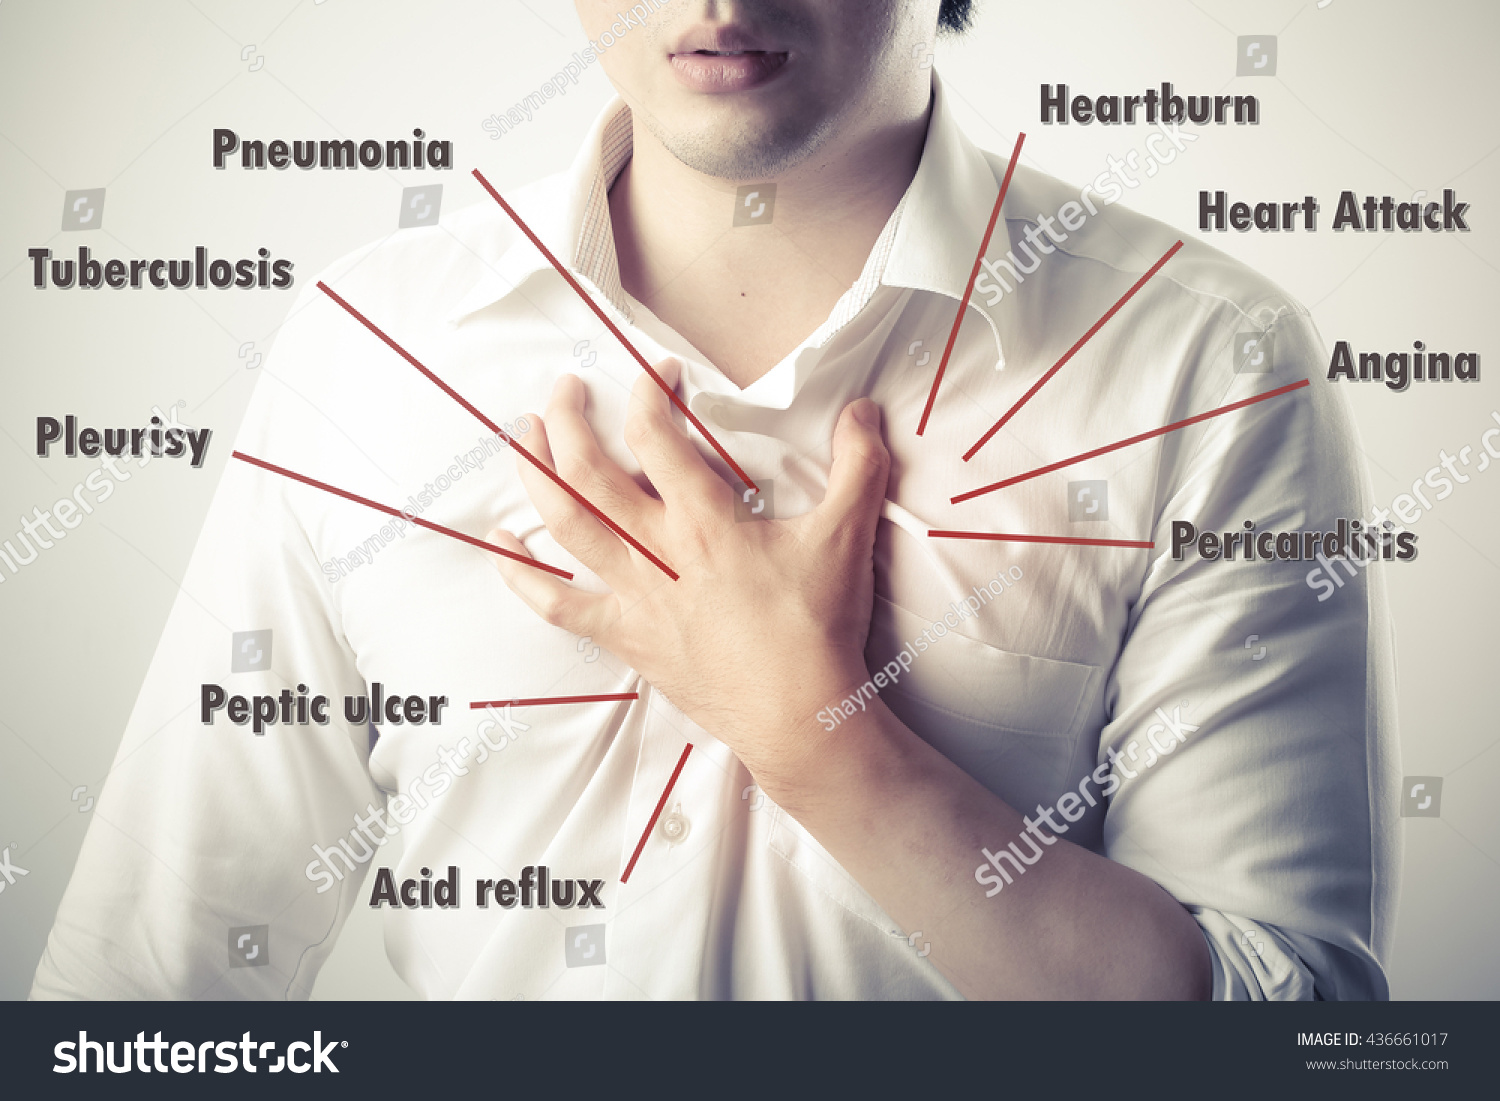 Heart diagram pain electrical work wiring diagram chest pain causes disease diagram stock photo edit now shutterstock rh shutterstock com heart attack chest pain diagram heart attack pain diagram ccuart Image collections